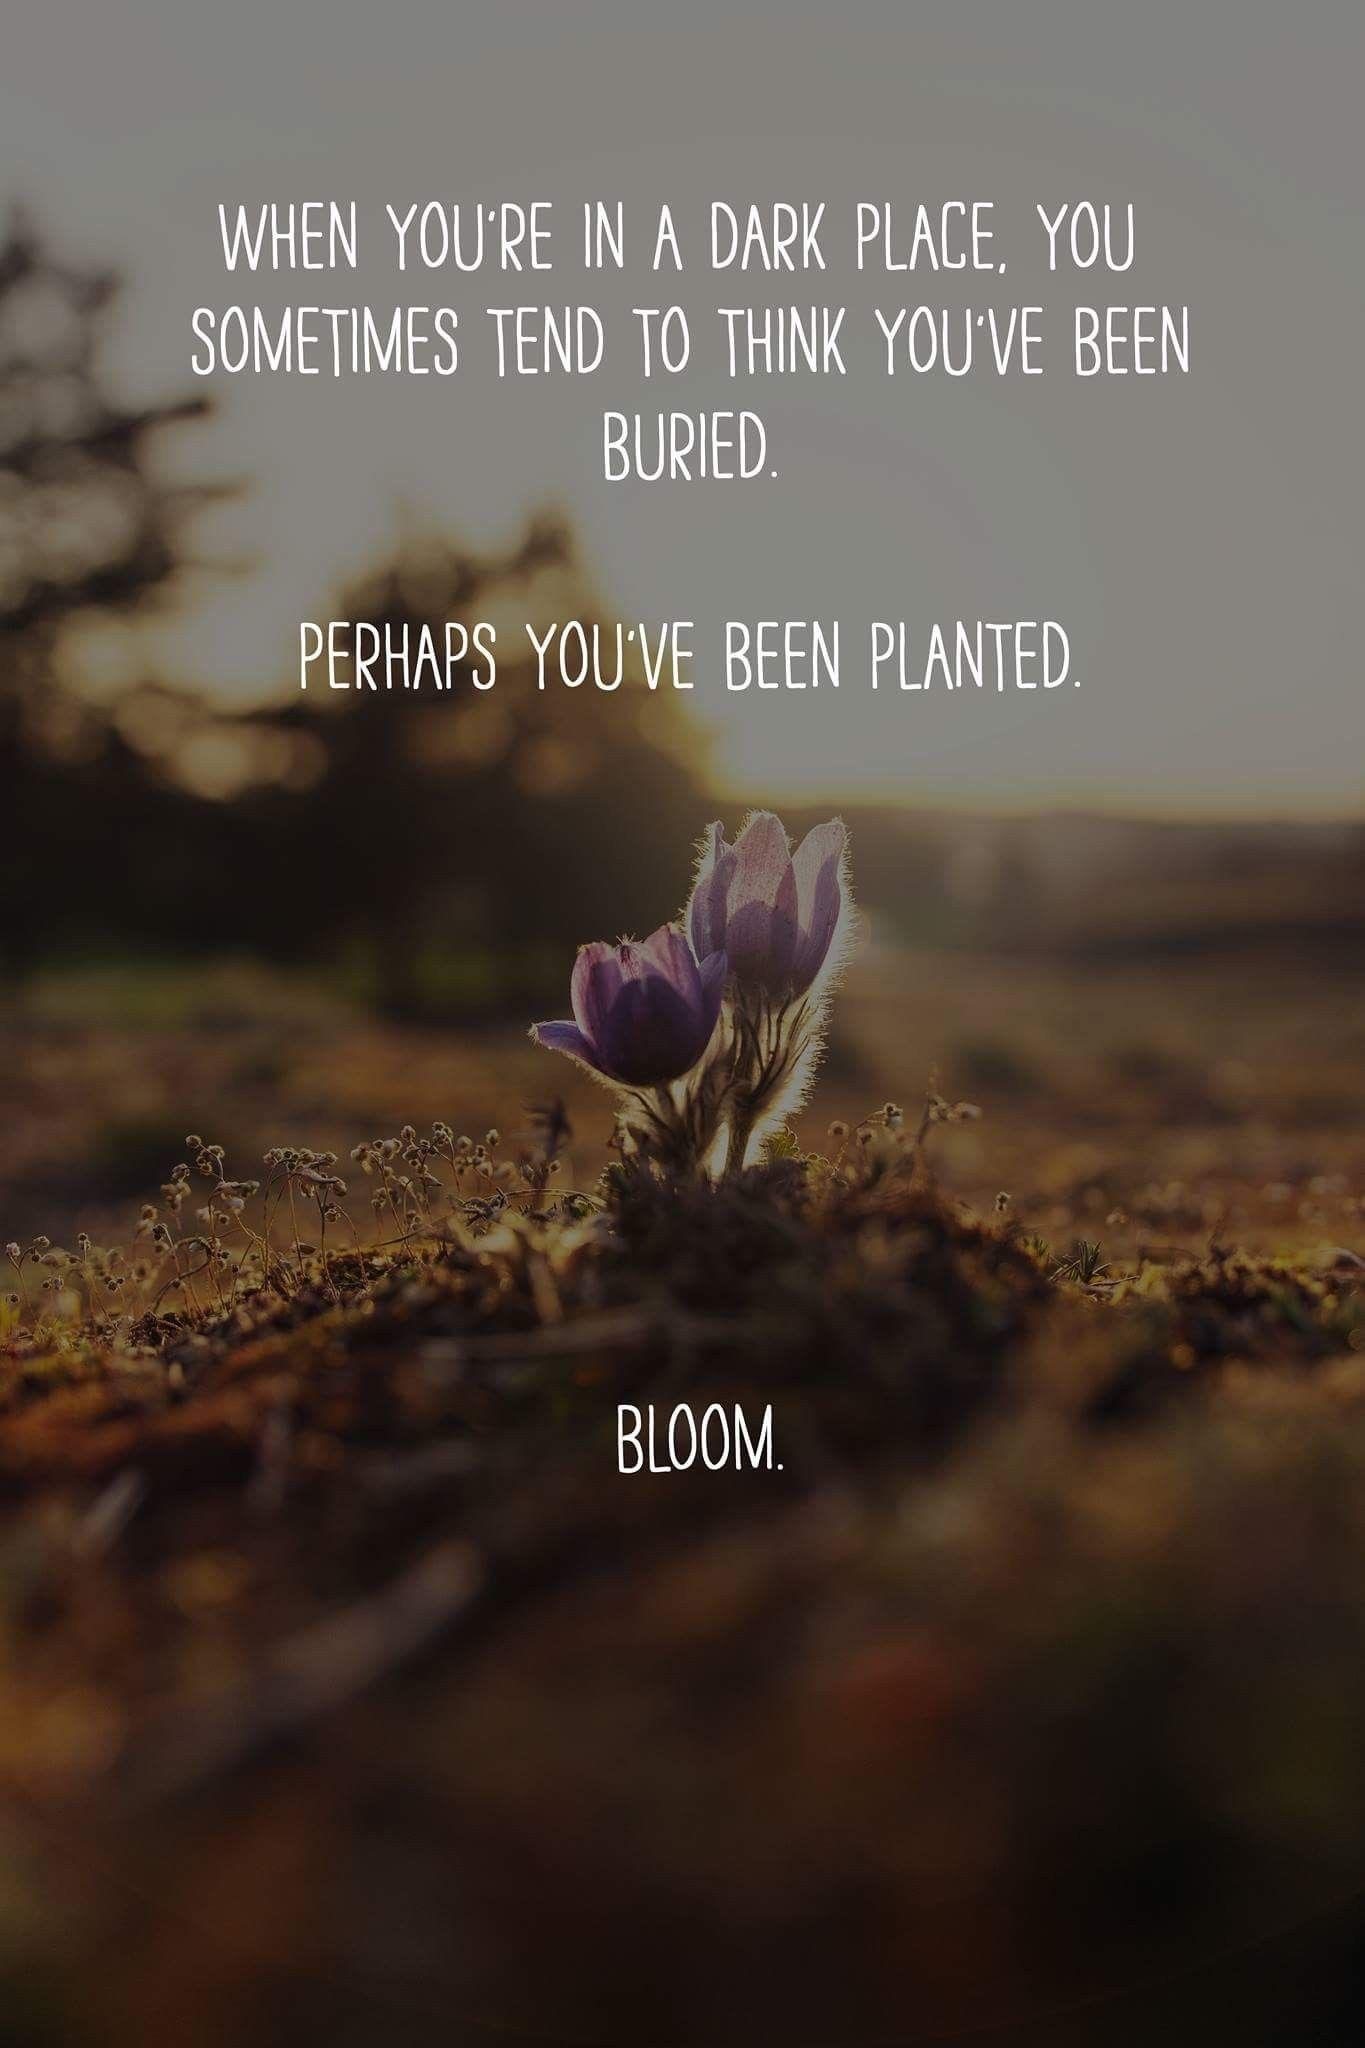 [Image] bloom 🌻